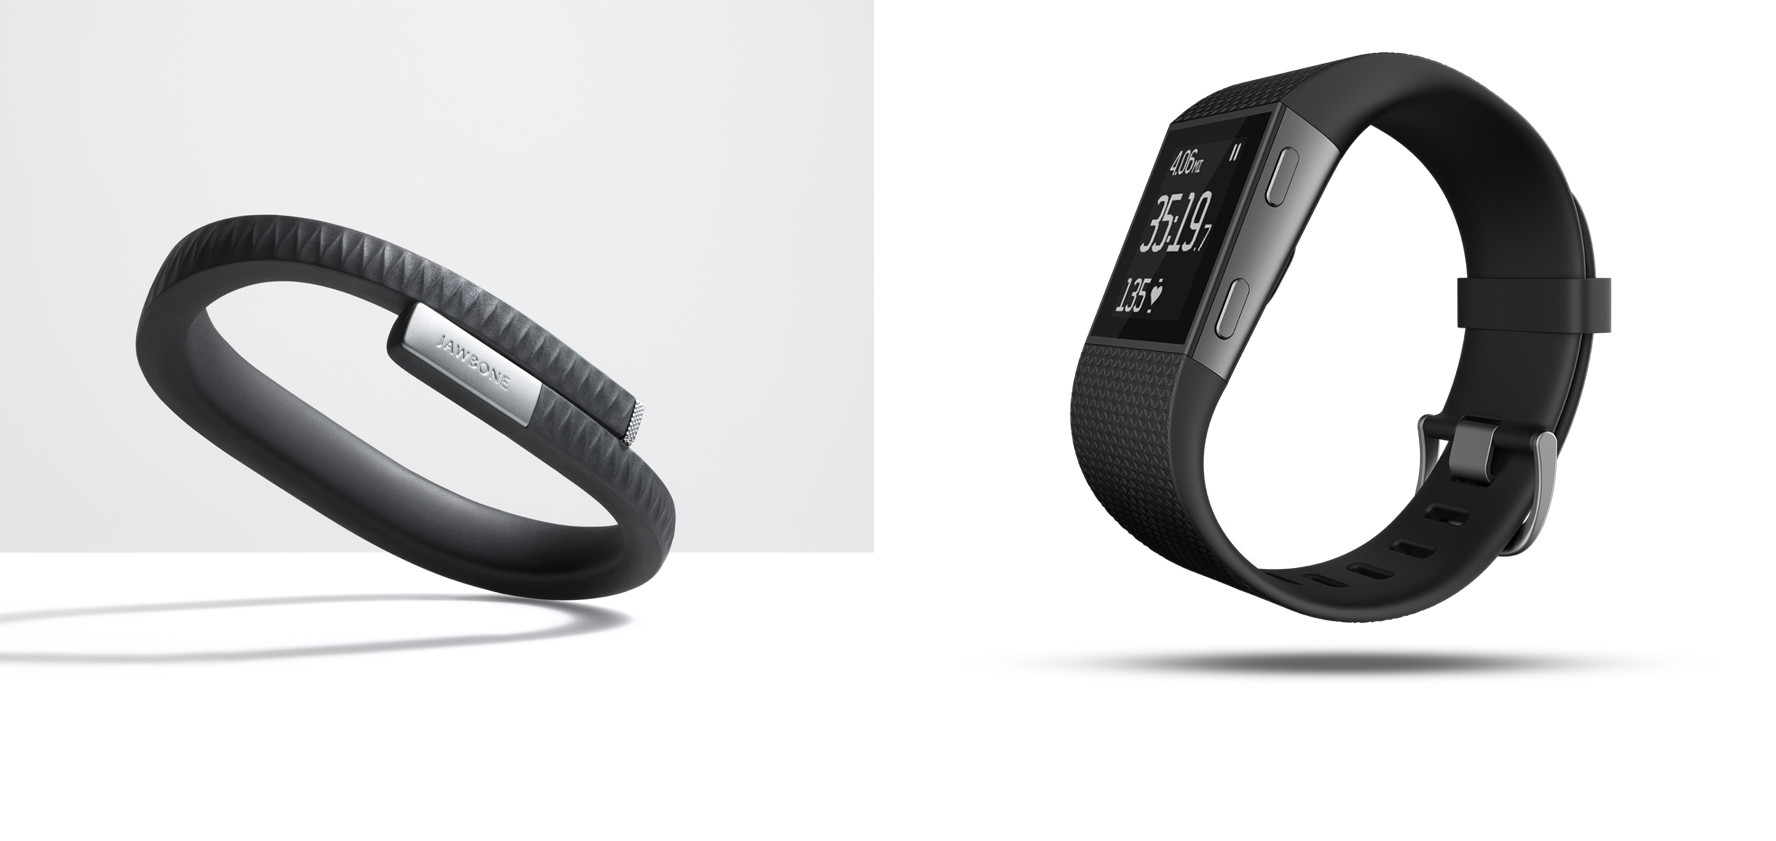 The Jawbone Up and the Fitbit Surge